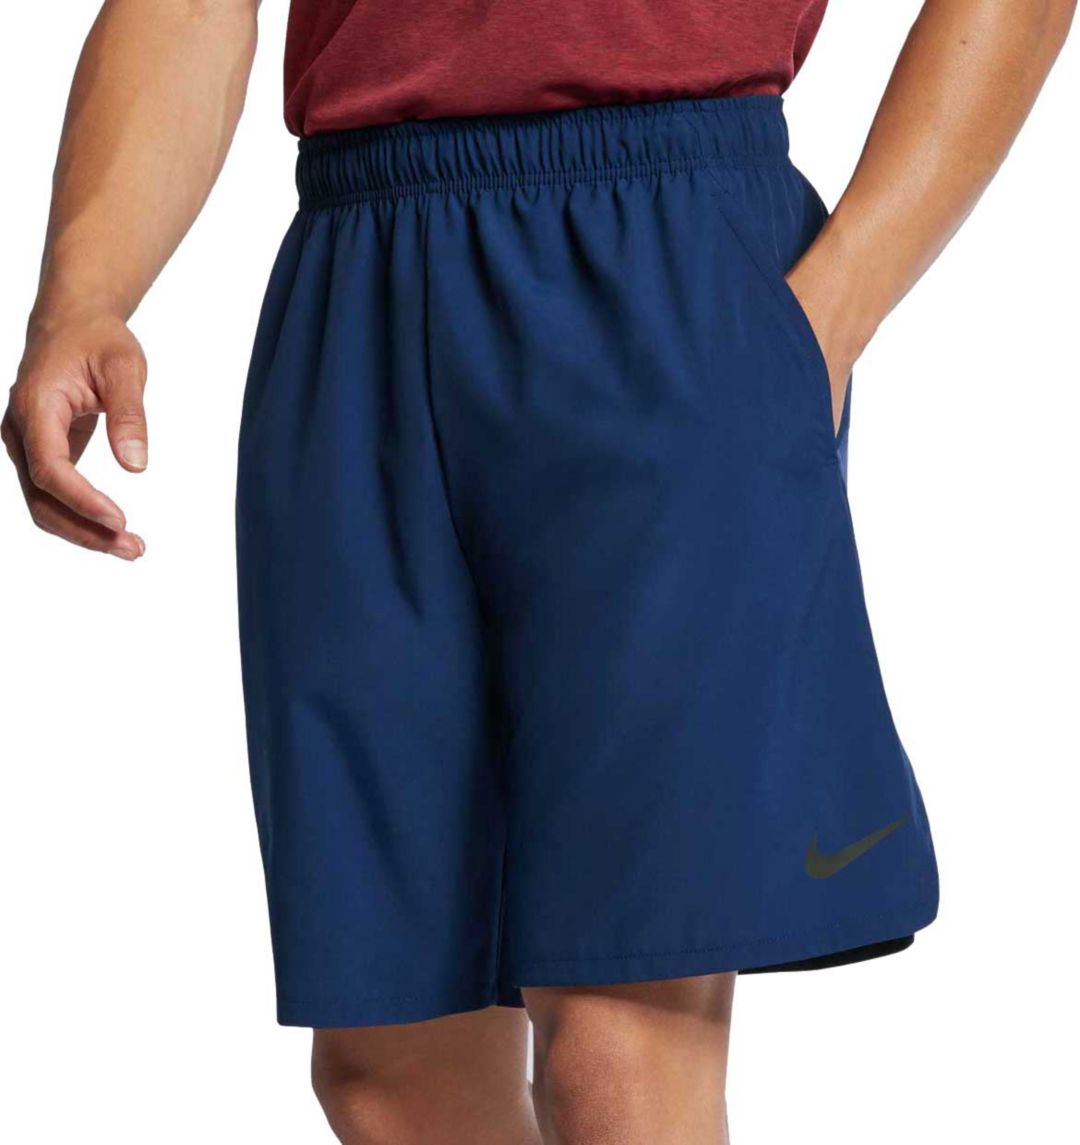 071f2253940b8 Nike Men's 8'' Flex Woven Training Shorts 2.0. noImageFound. Previous